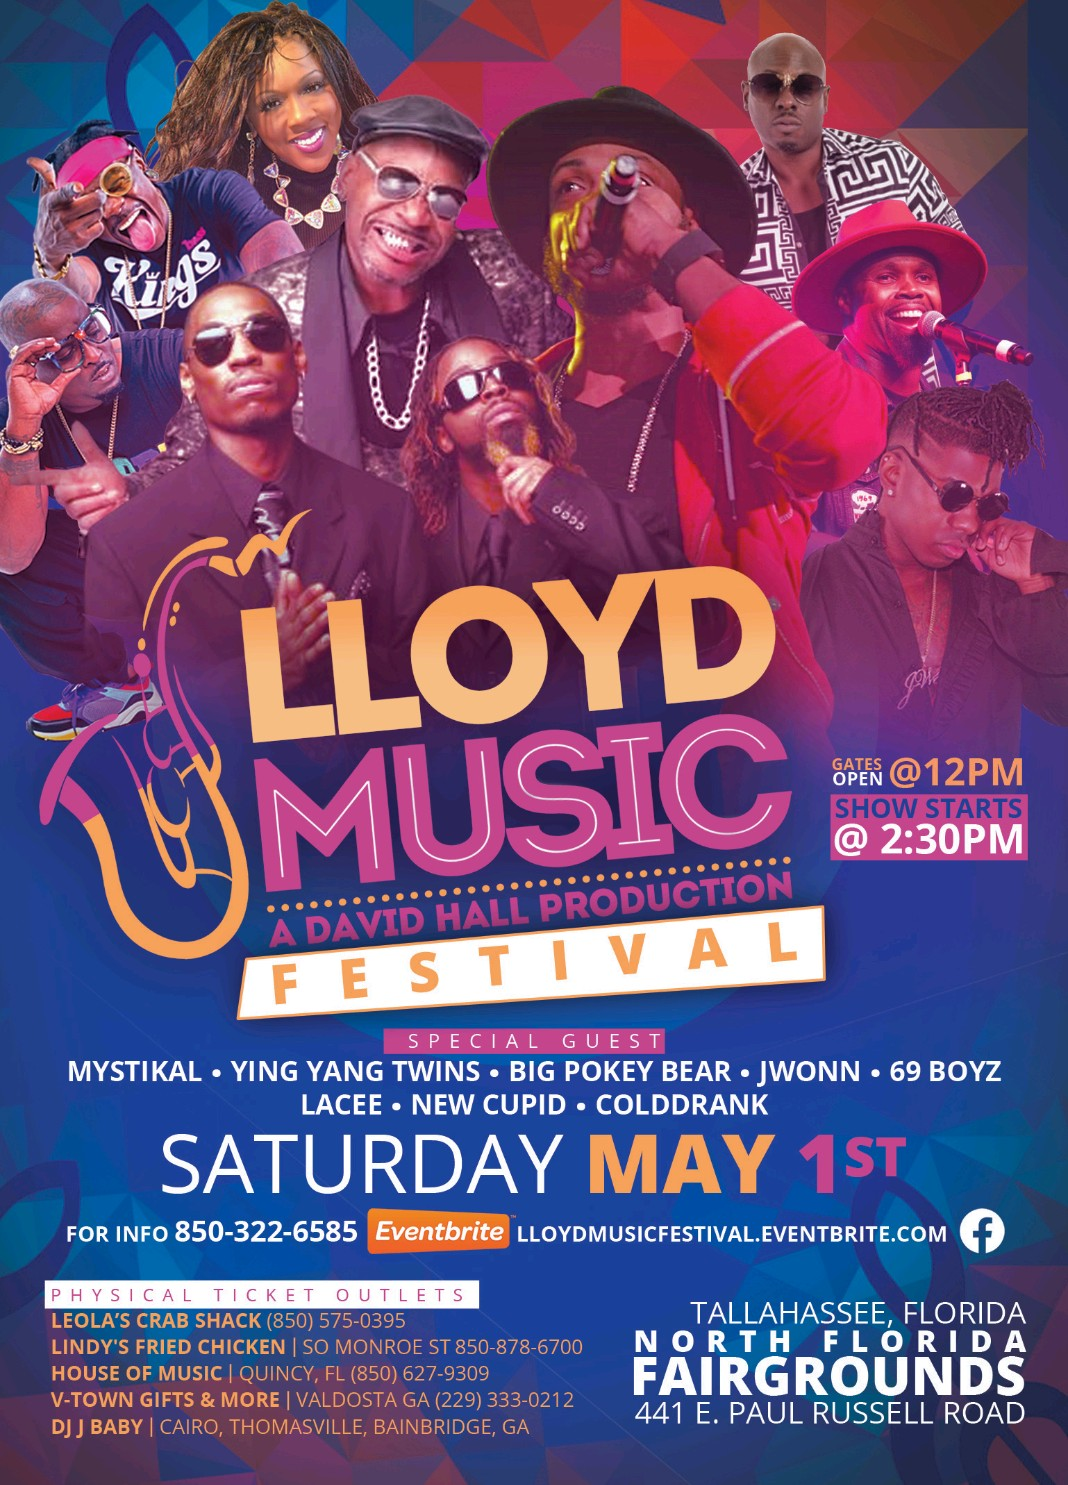 Your chance to go to Lloyd Music Festival 2021!